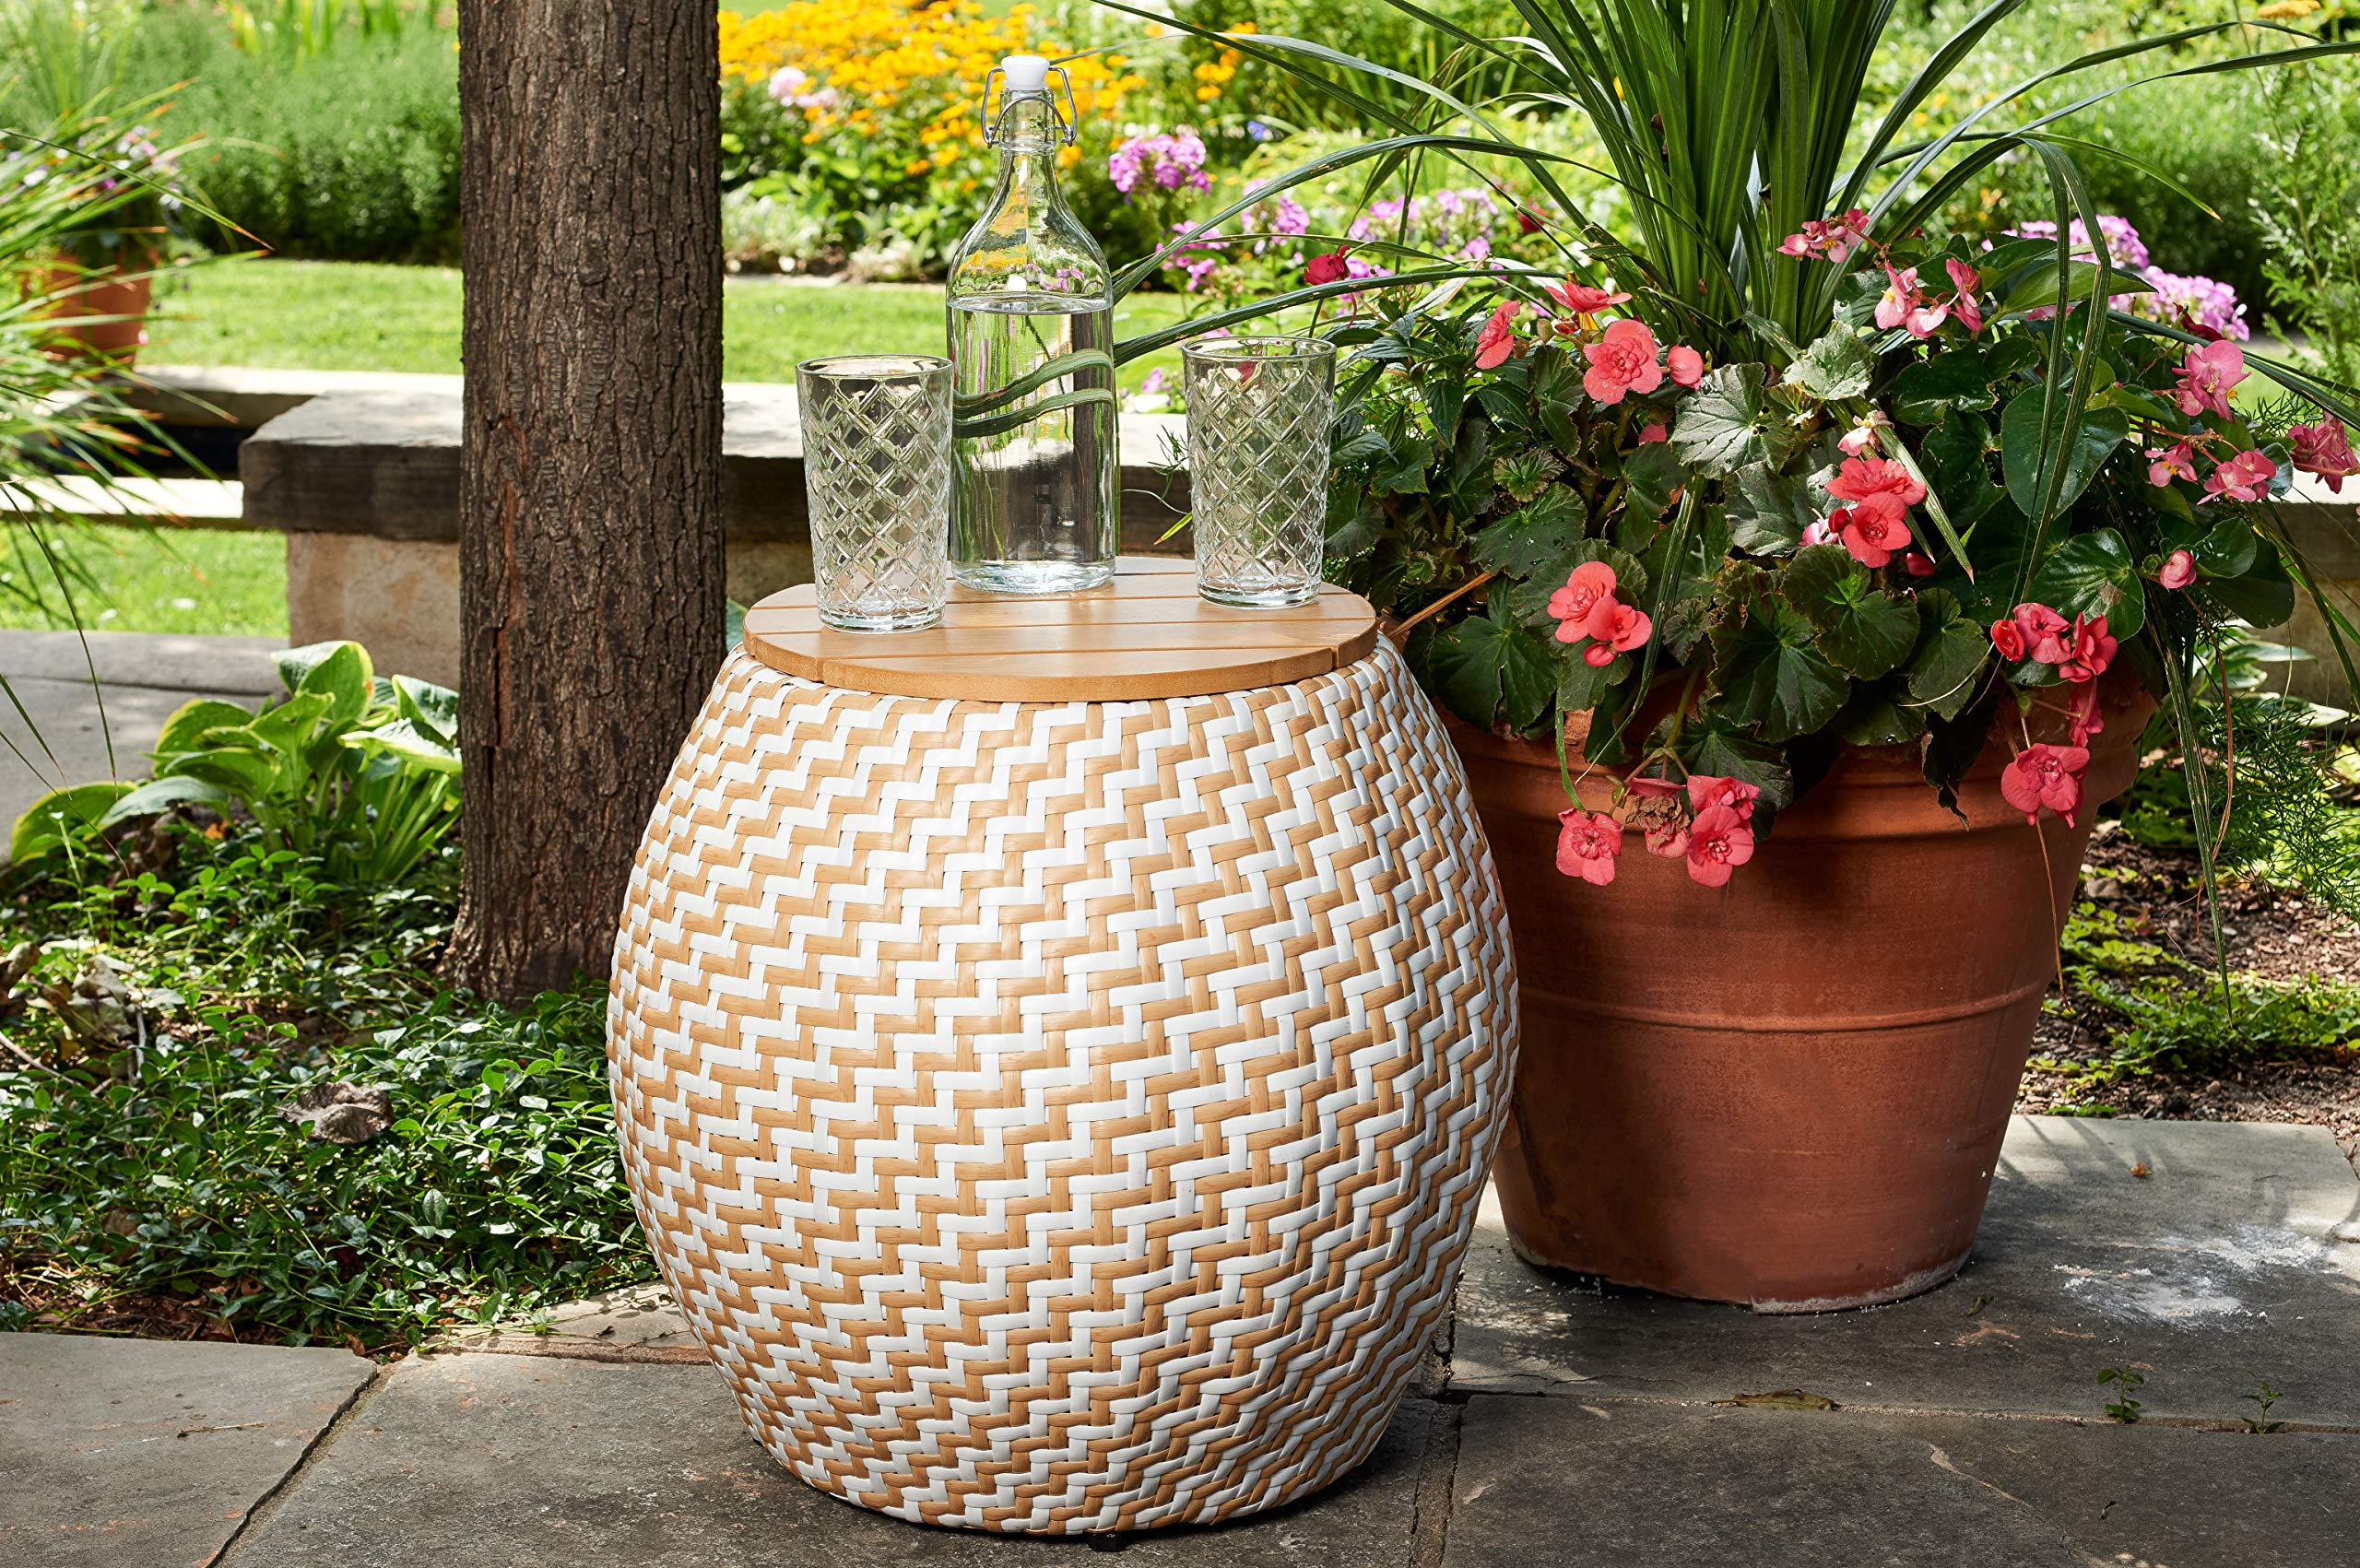 Quality Outdoor Living 65-YZST02 Amelia Side Table, Natural + White Wicker by Quality Outdoor Living